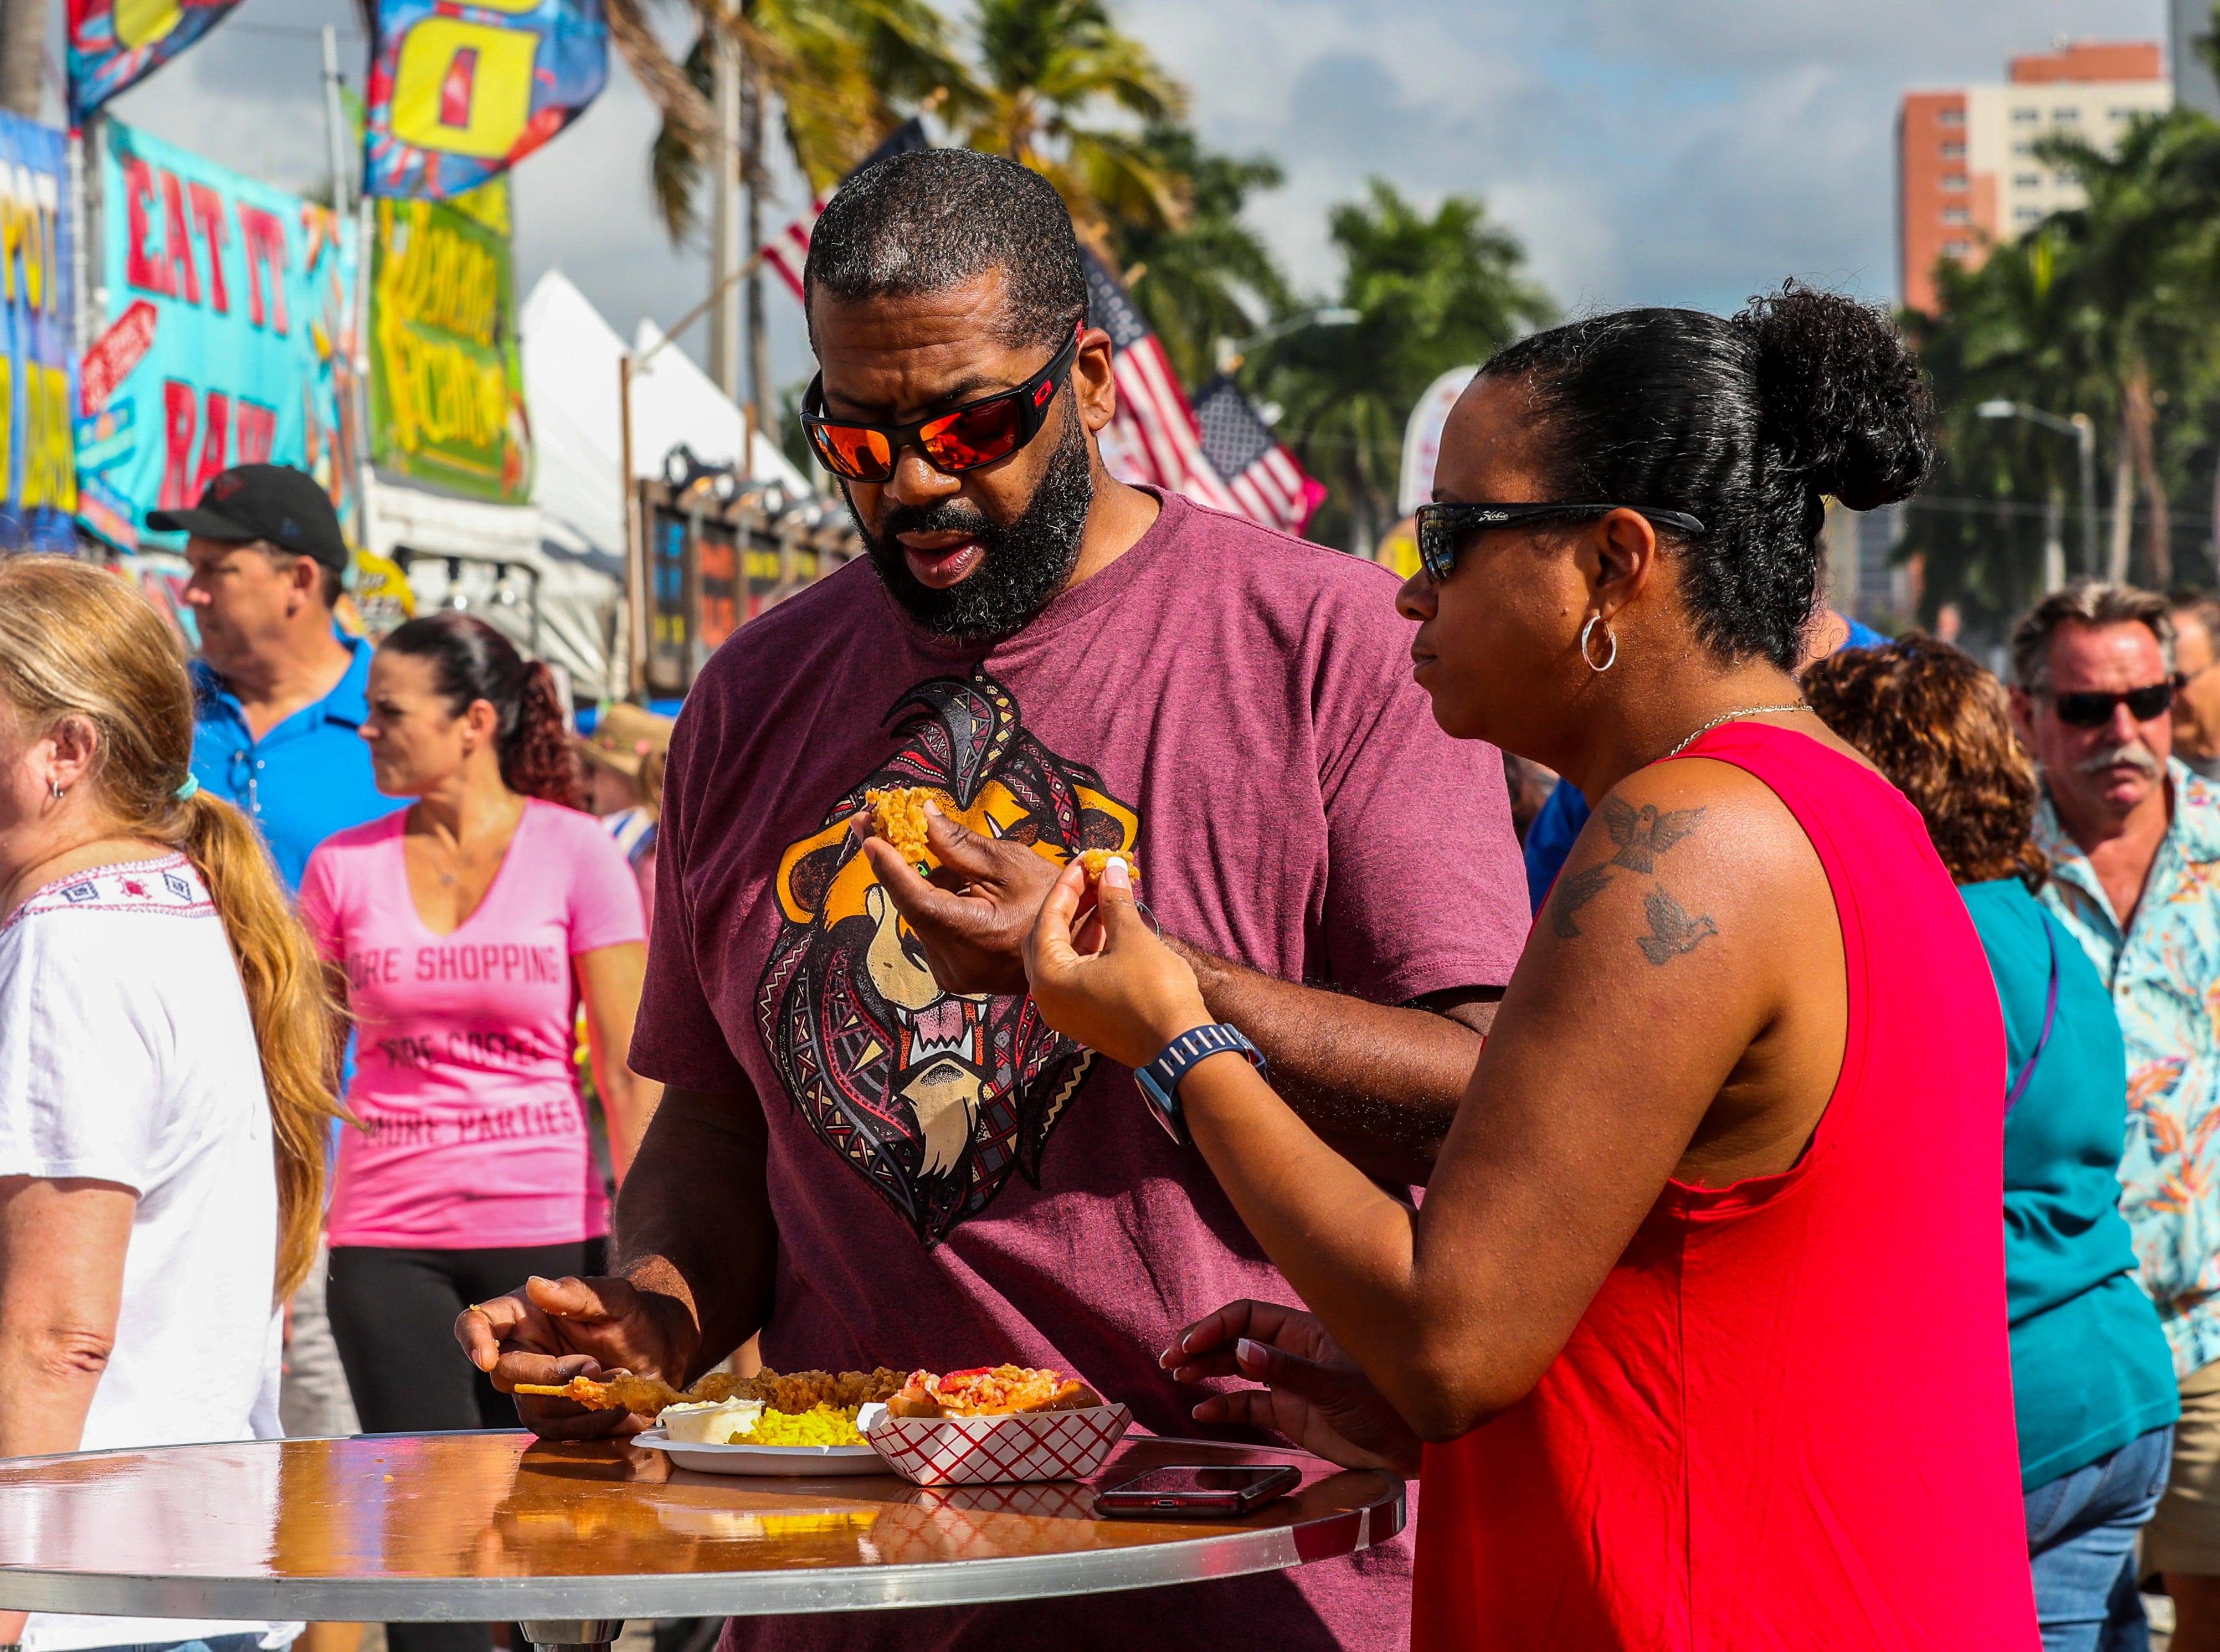 Tanis and Greg Wright, of Fort Myers, enjoy some shrimp from one of the vendors. Fort Myers Seafood and Music Festival is a new event for downtown Fort Myers that featured live bands, seafood dishes from vendors and local restaurants and a small marketplace with arts, crafts and more items.